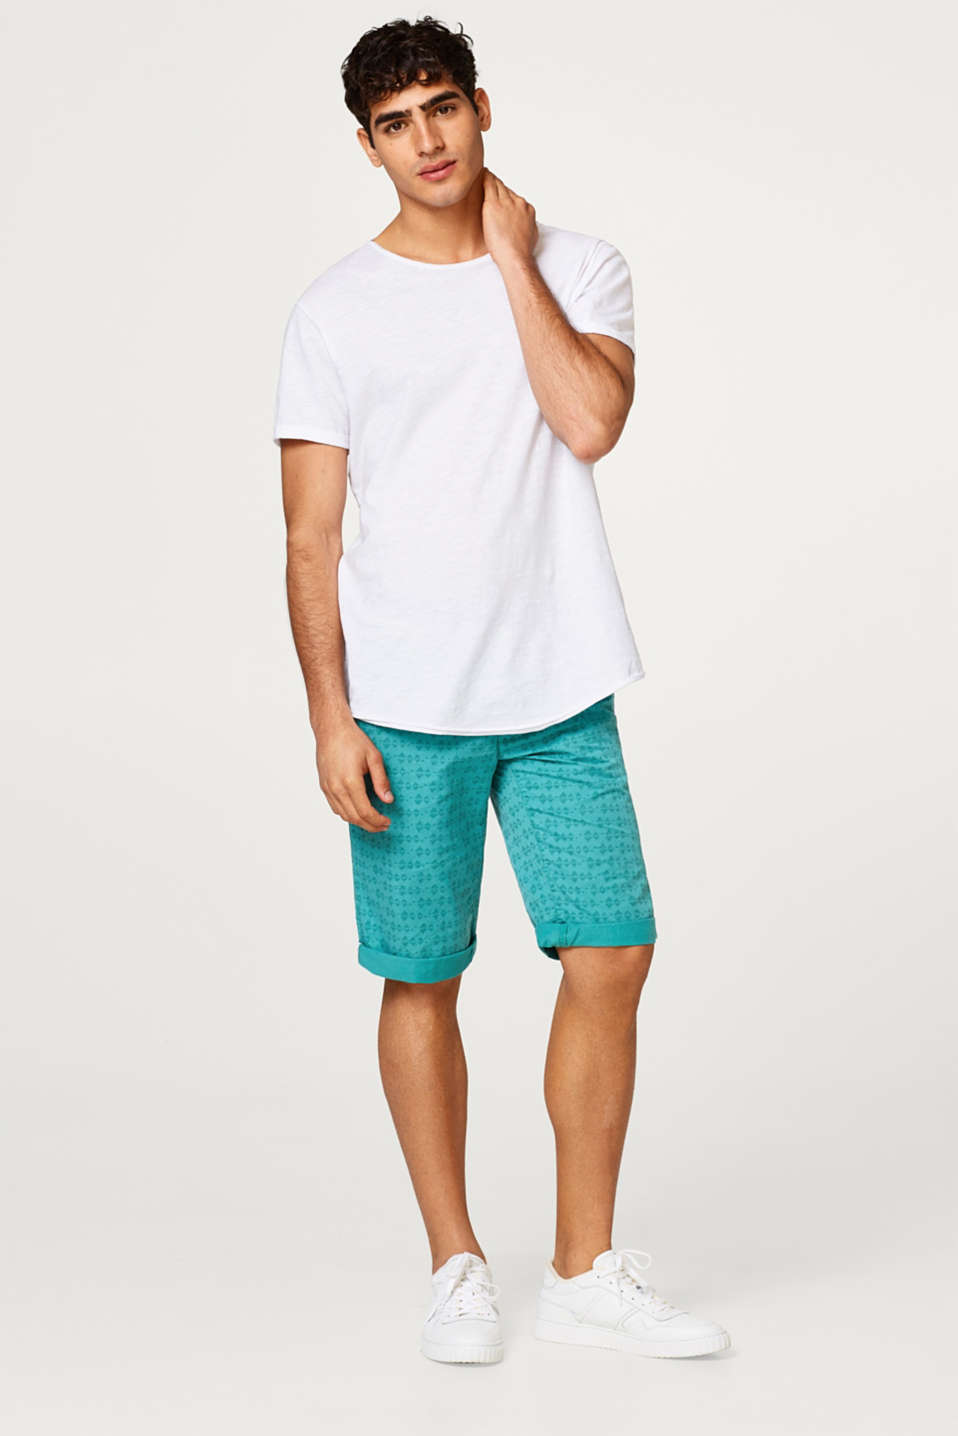 Chino shorts with an all-over print and belt